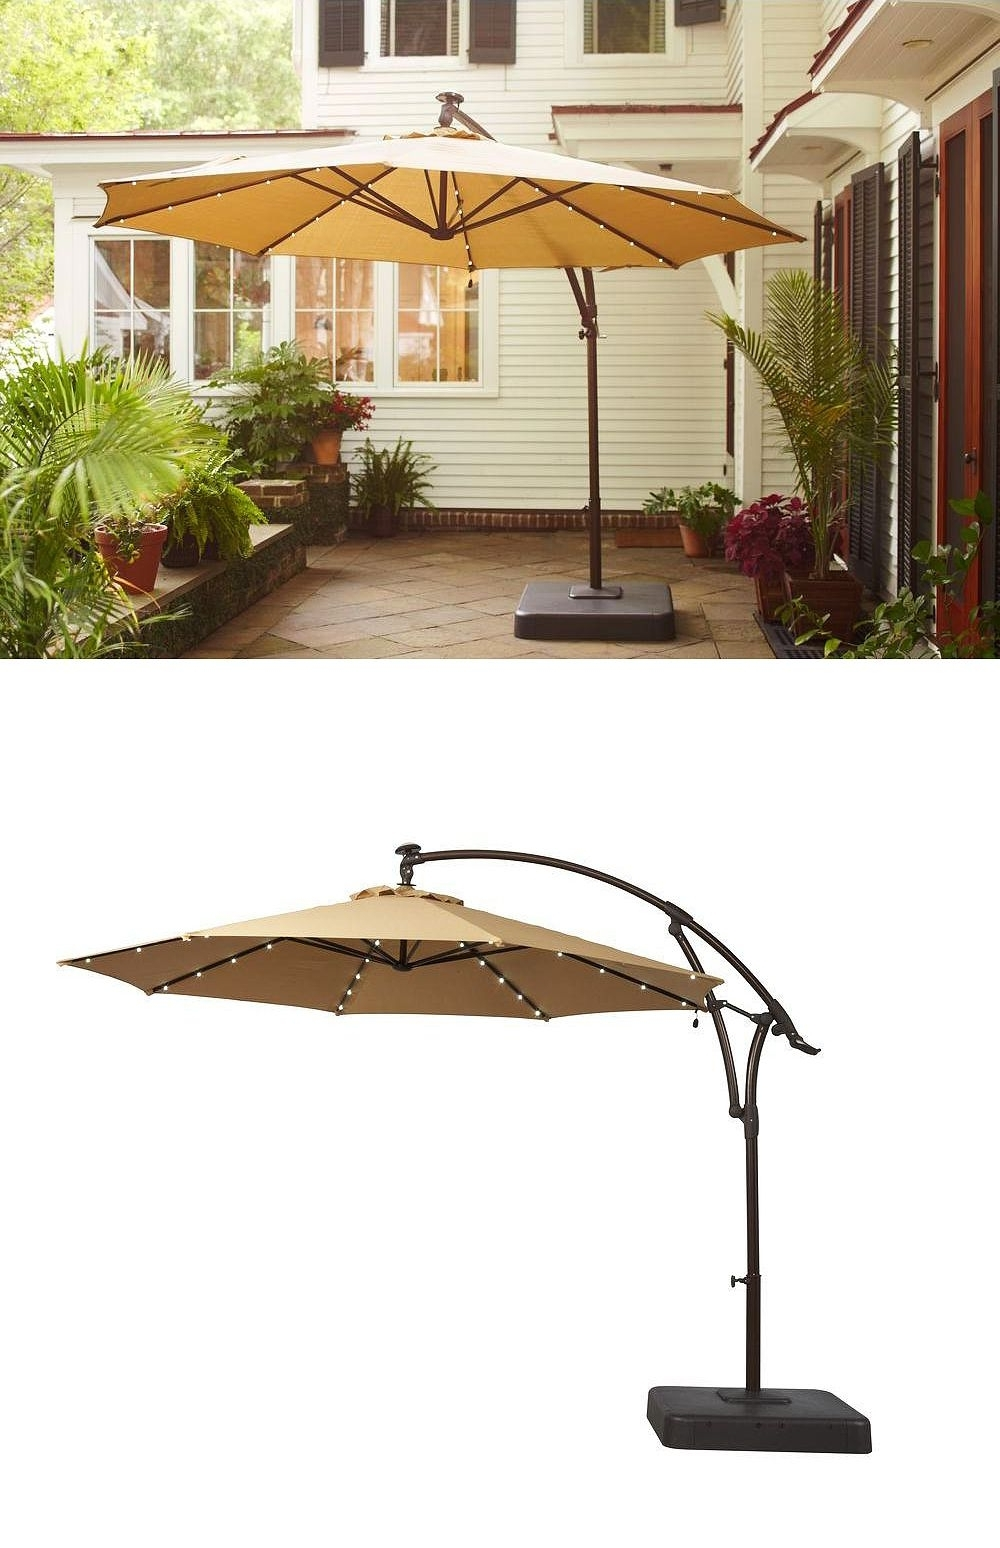 Newest There's Something Special About This Patio Umbrella: It Has Small Throughout Patio Umbrellas With Led Lights (View 17 of 20)